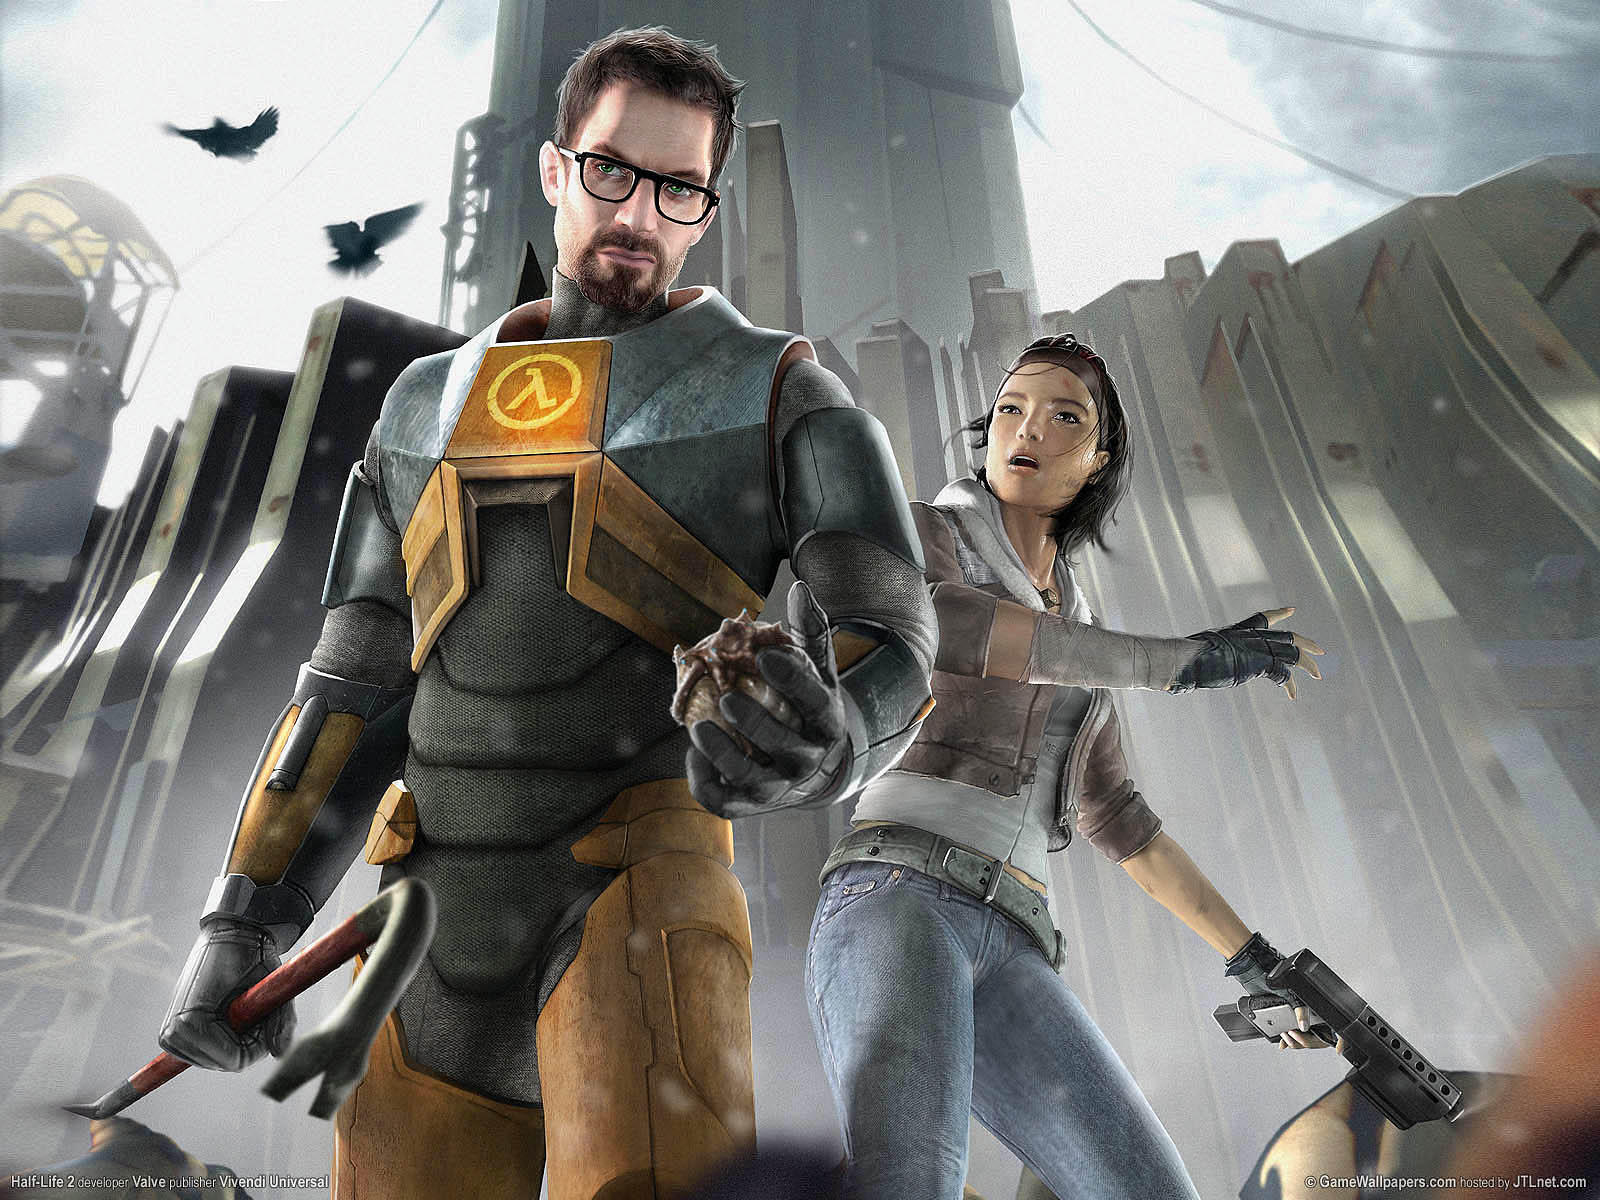 Insider Claims Valve Is Working On Two New Half-Life Games